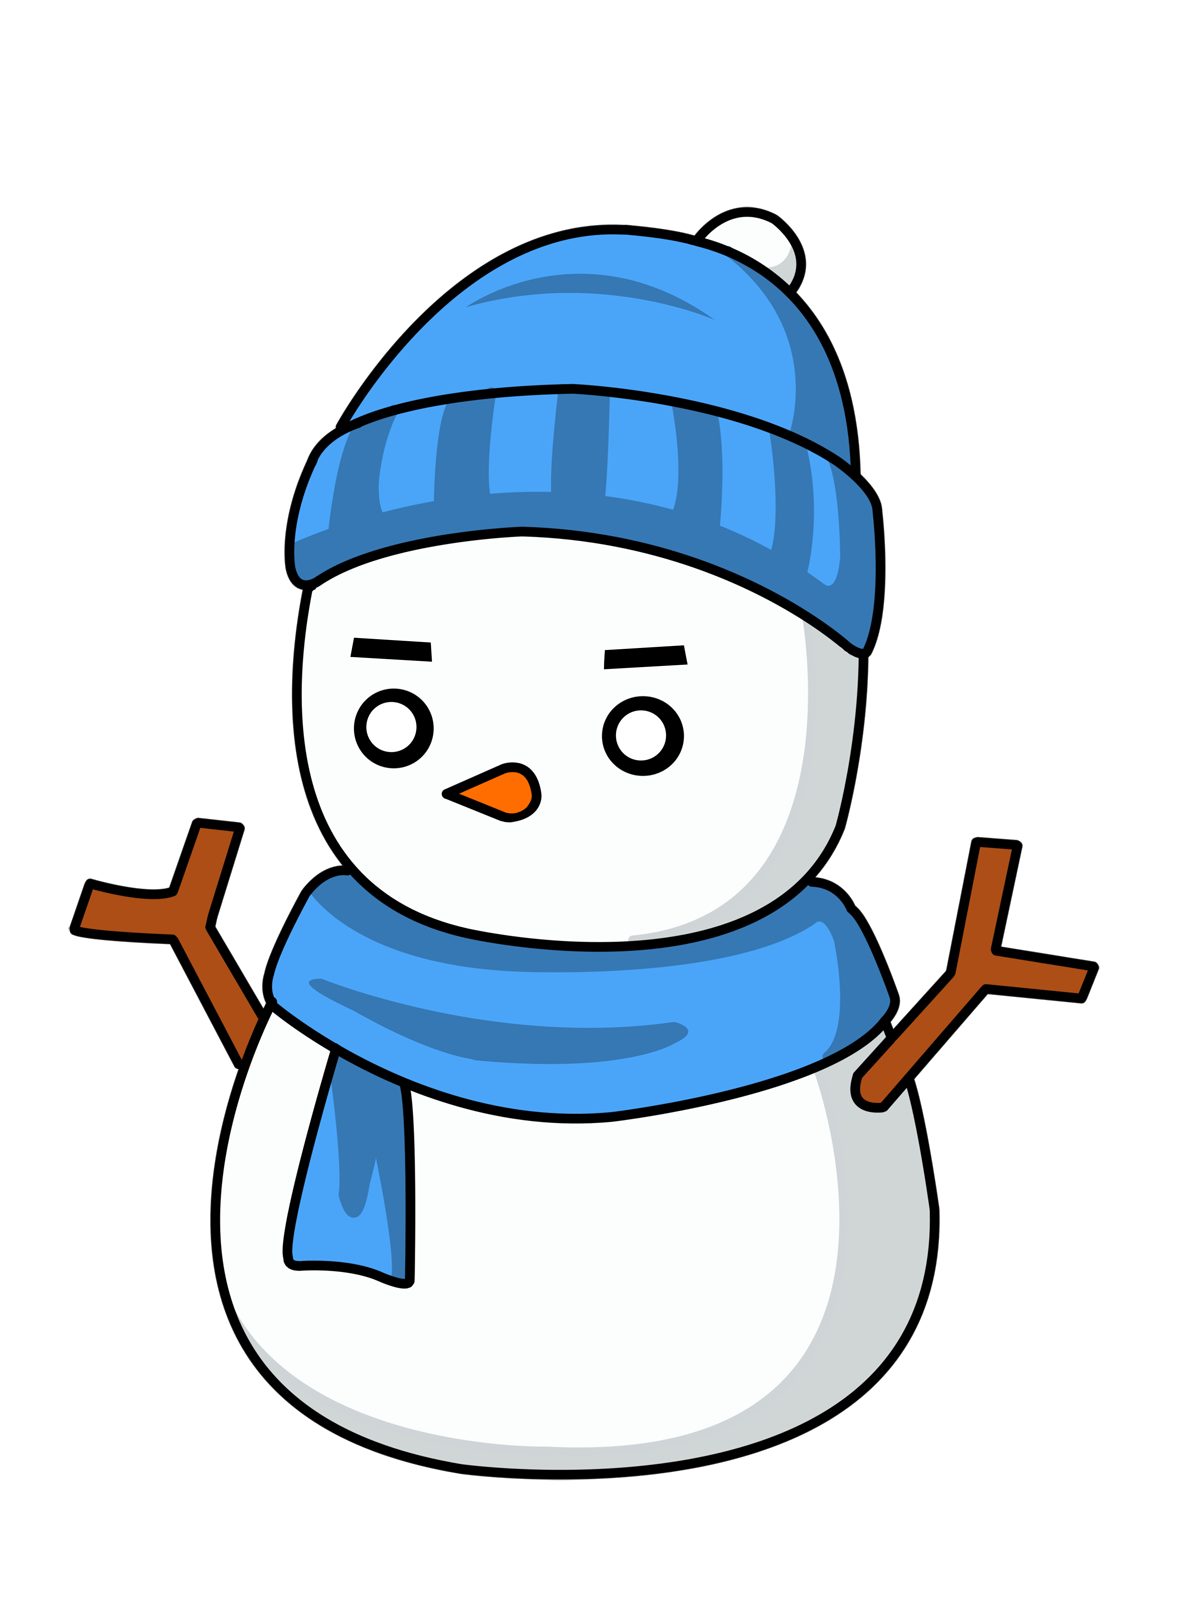 clipart freeuse download Funny Snowman Clipart